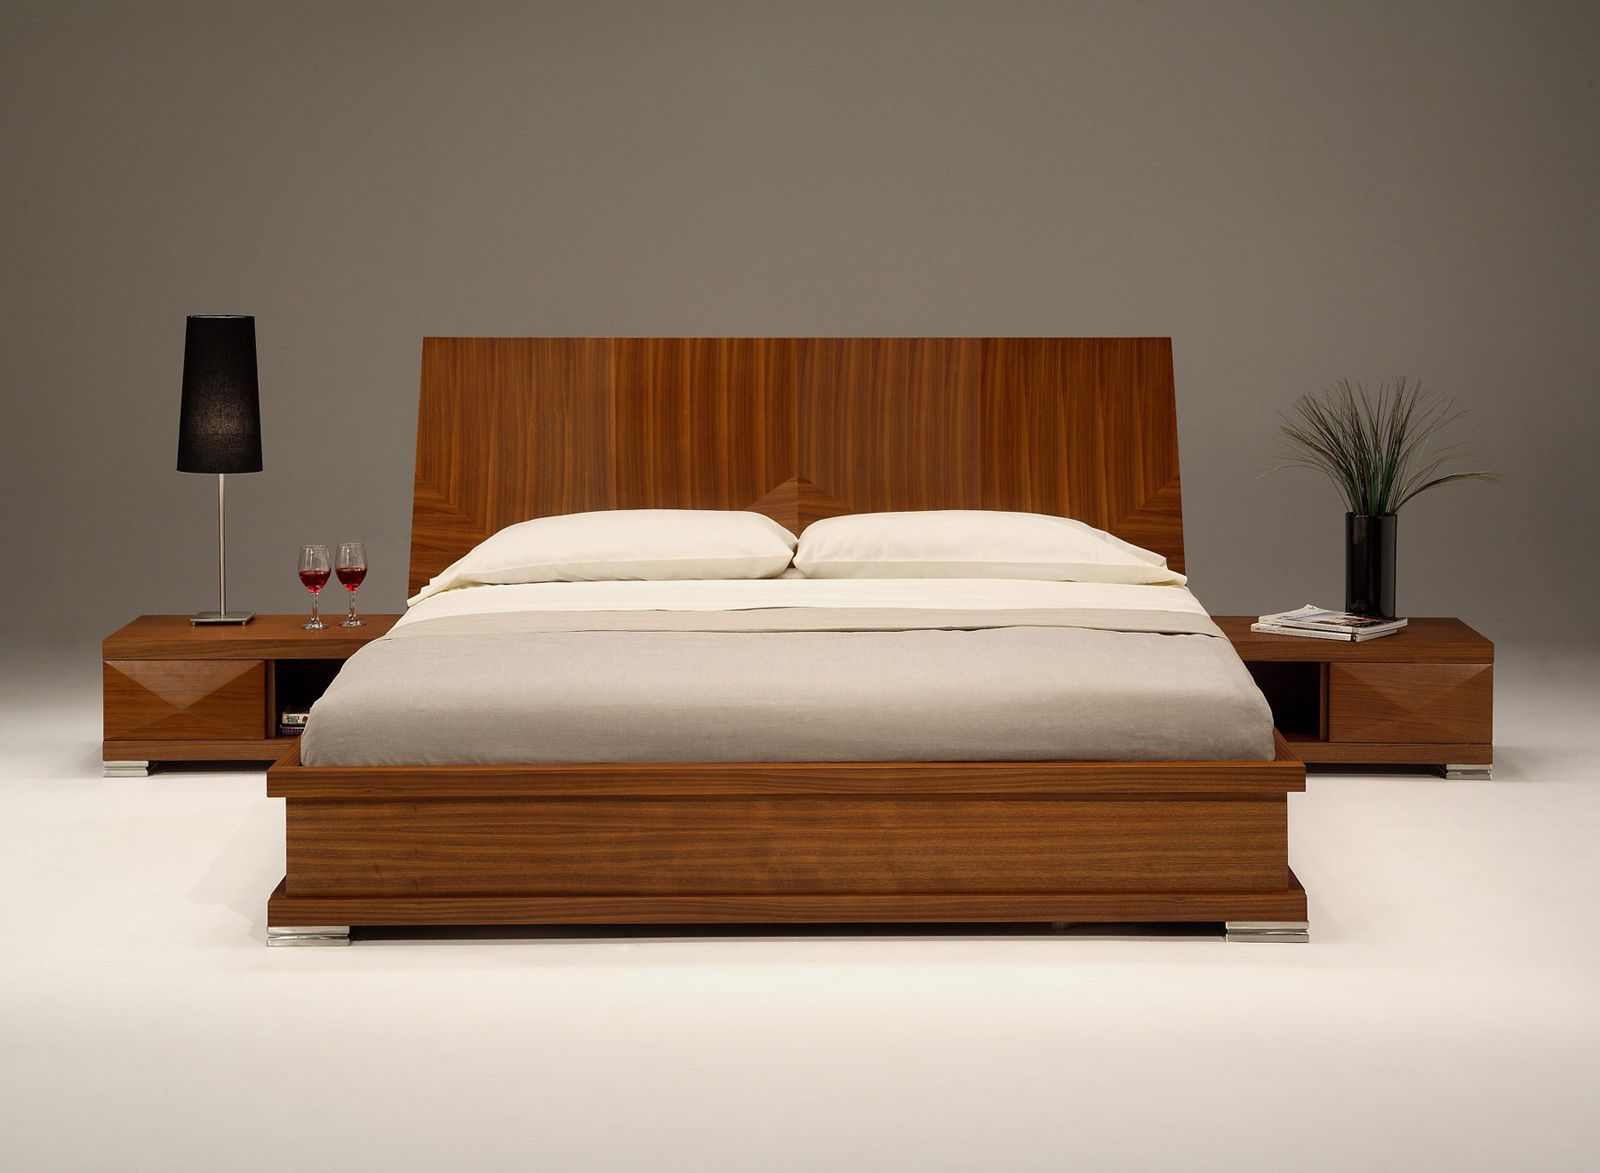 Bedroom design tips with modern bedroom furniture for Bedroom furniture design